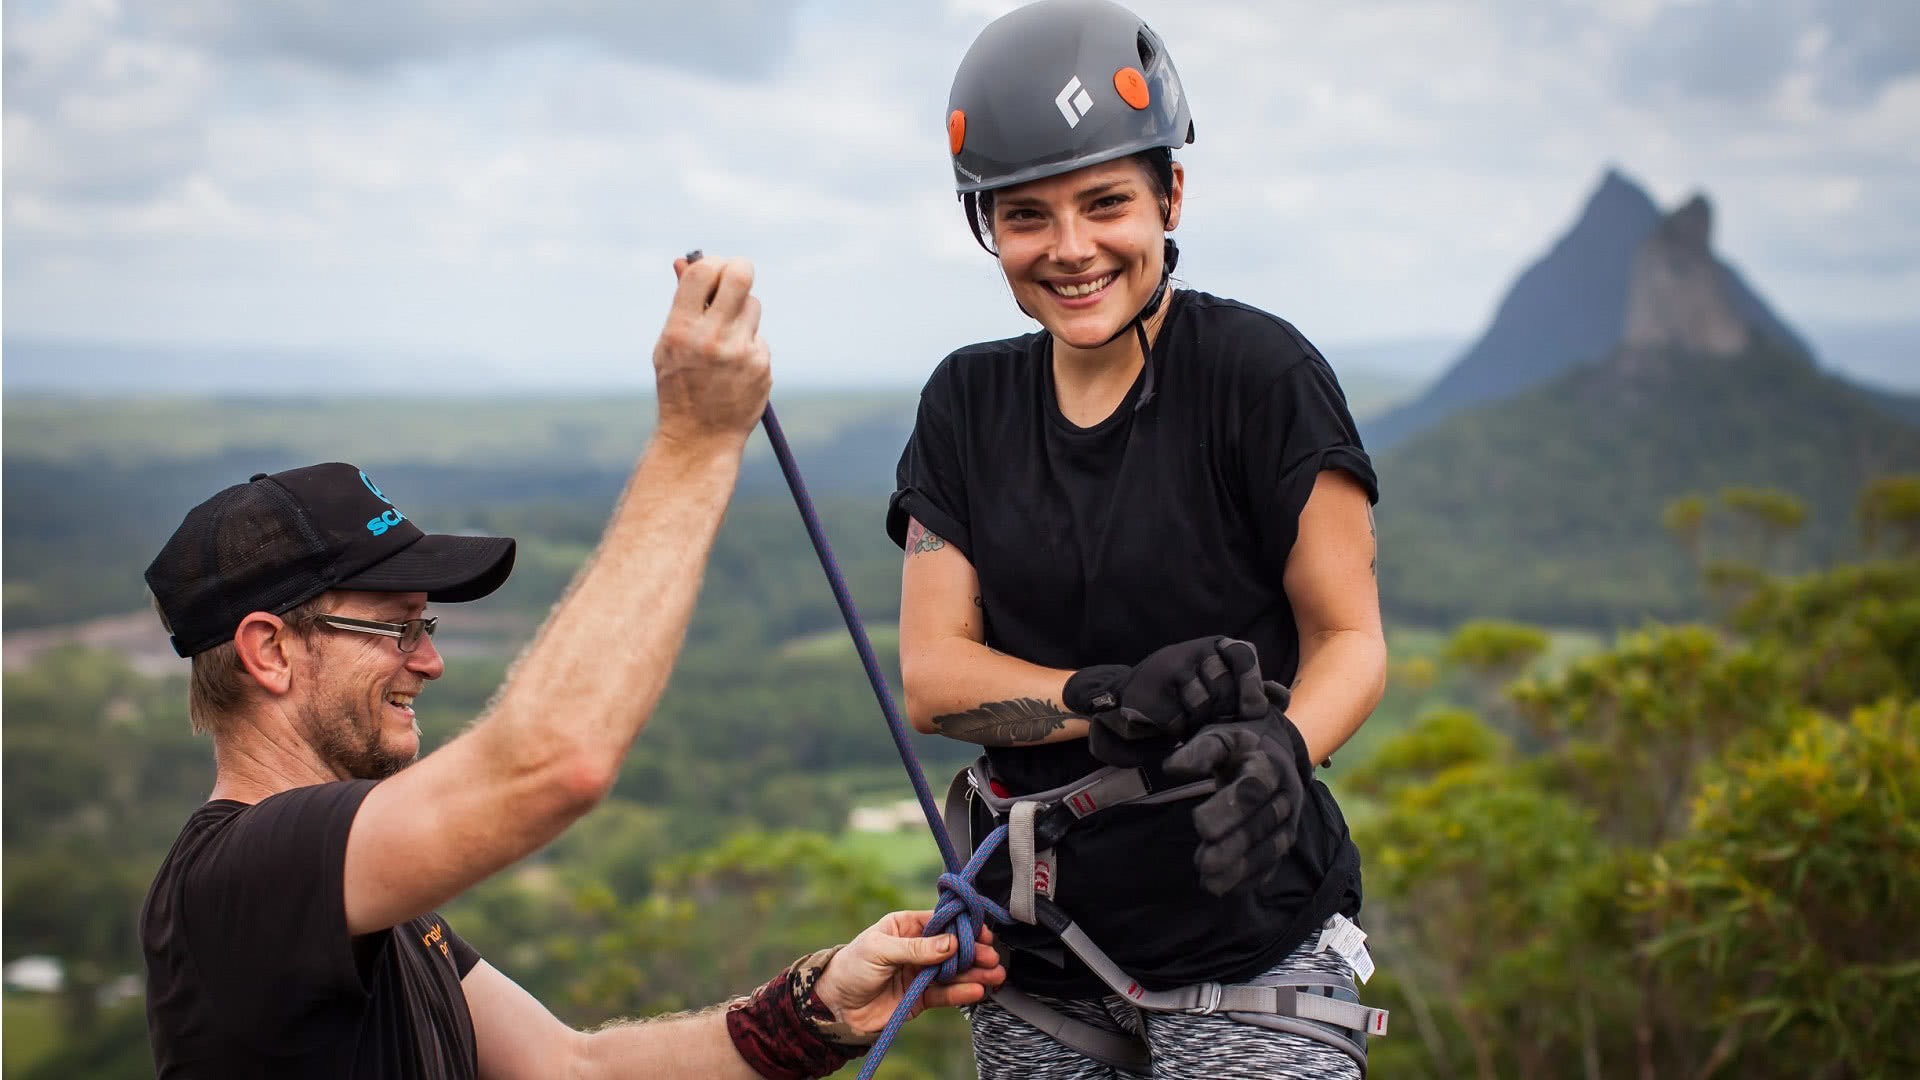 Glasshouse Mountains Abseil, Pinnacle Sports, Adventure Tour, Queensland, Sunshine Coast